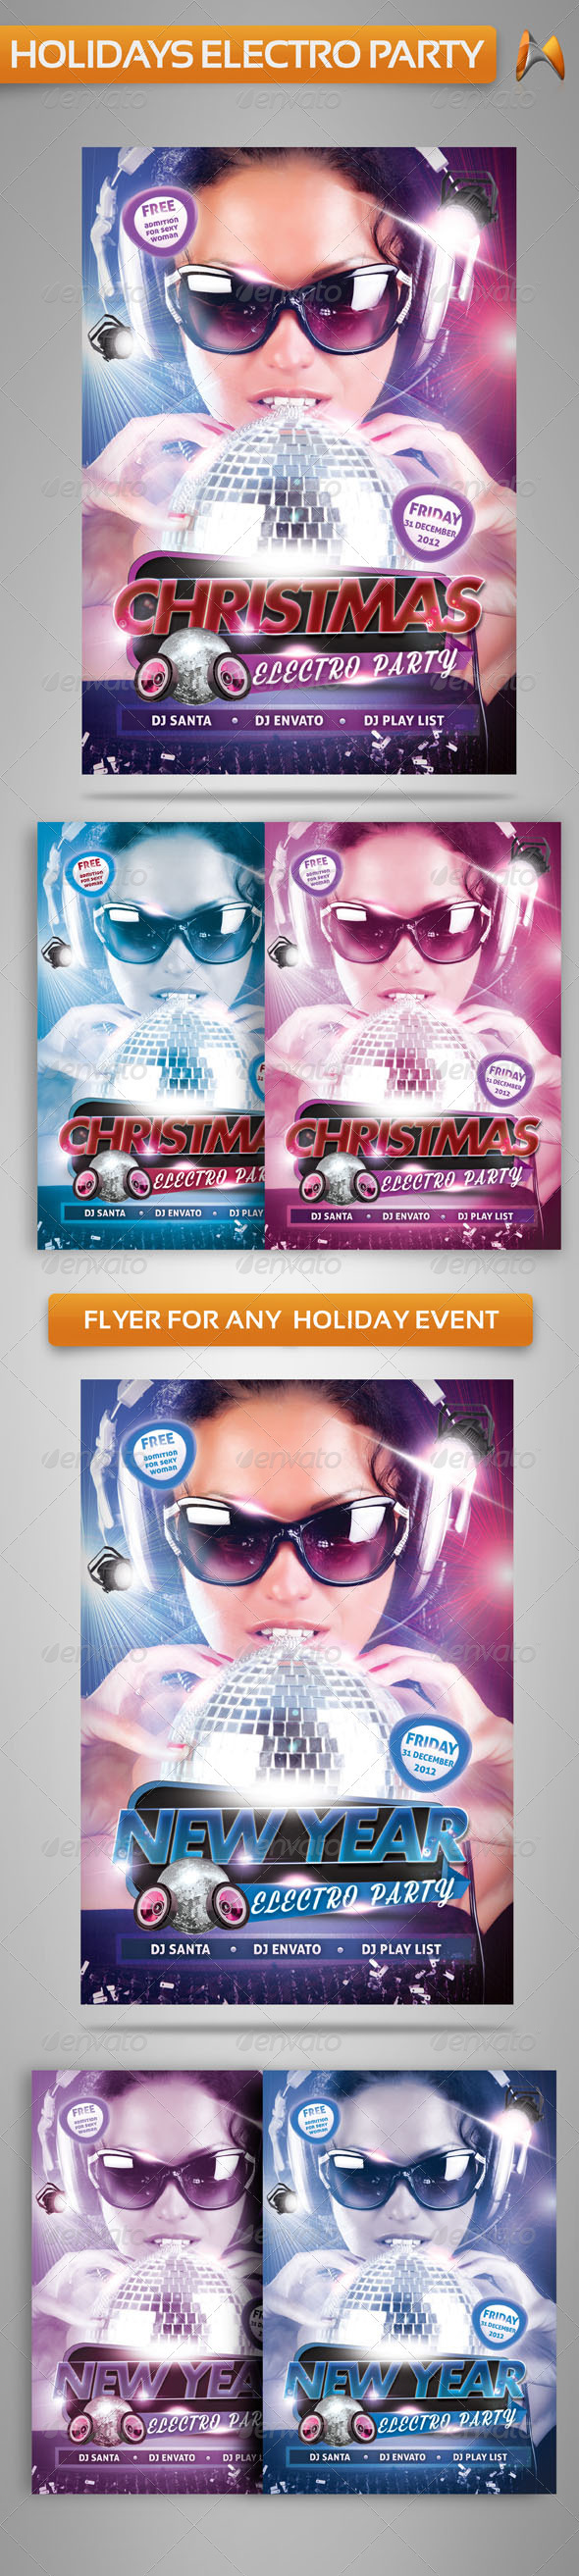 GraphicRiver Electro Party Flyer Template 3522590